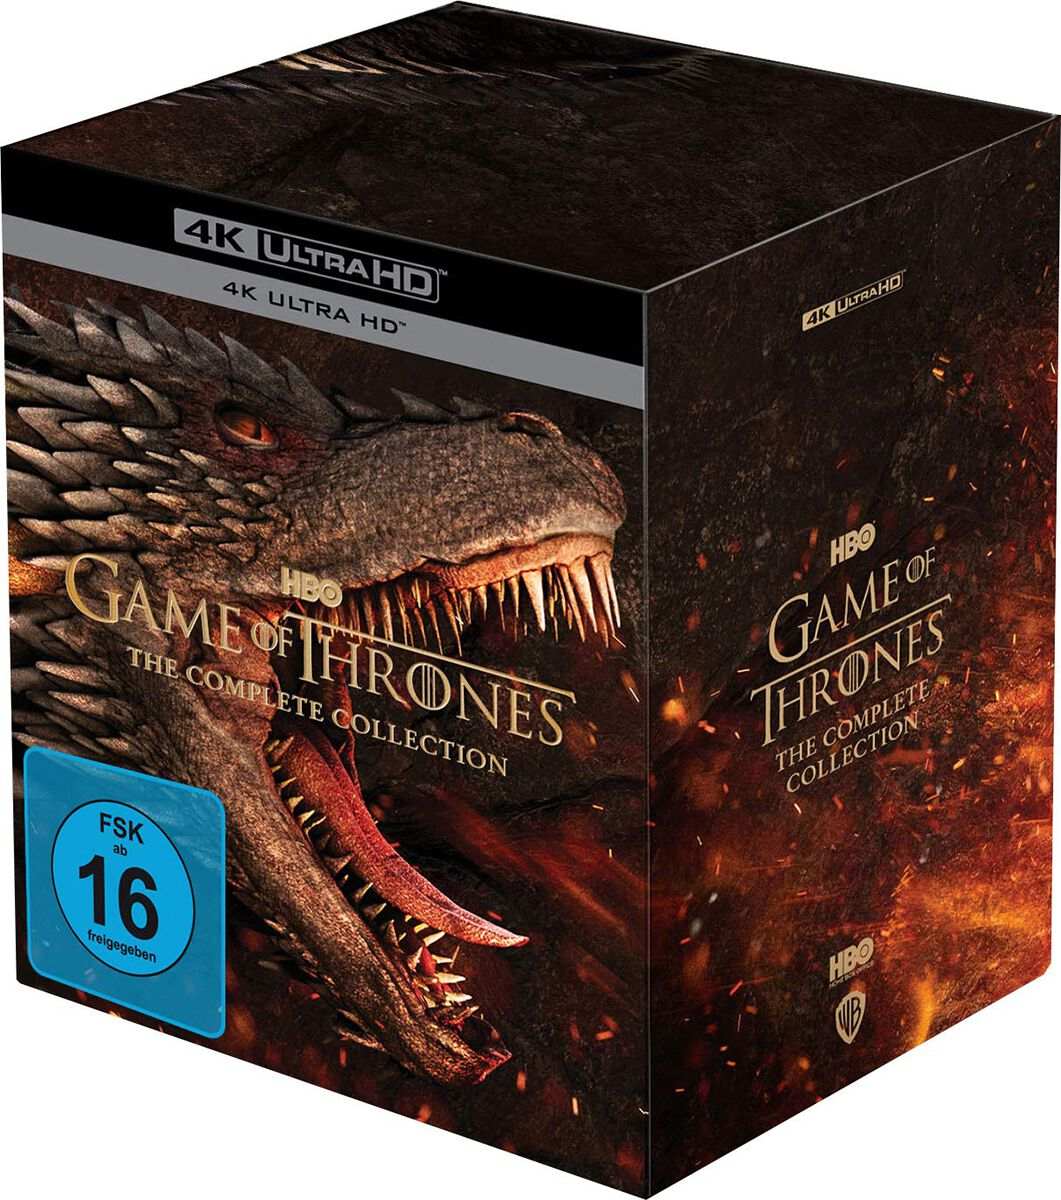 Image of Game Of Thrones The complete collection 33-Blu-ray Standard